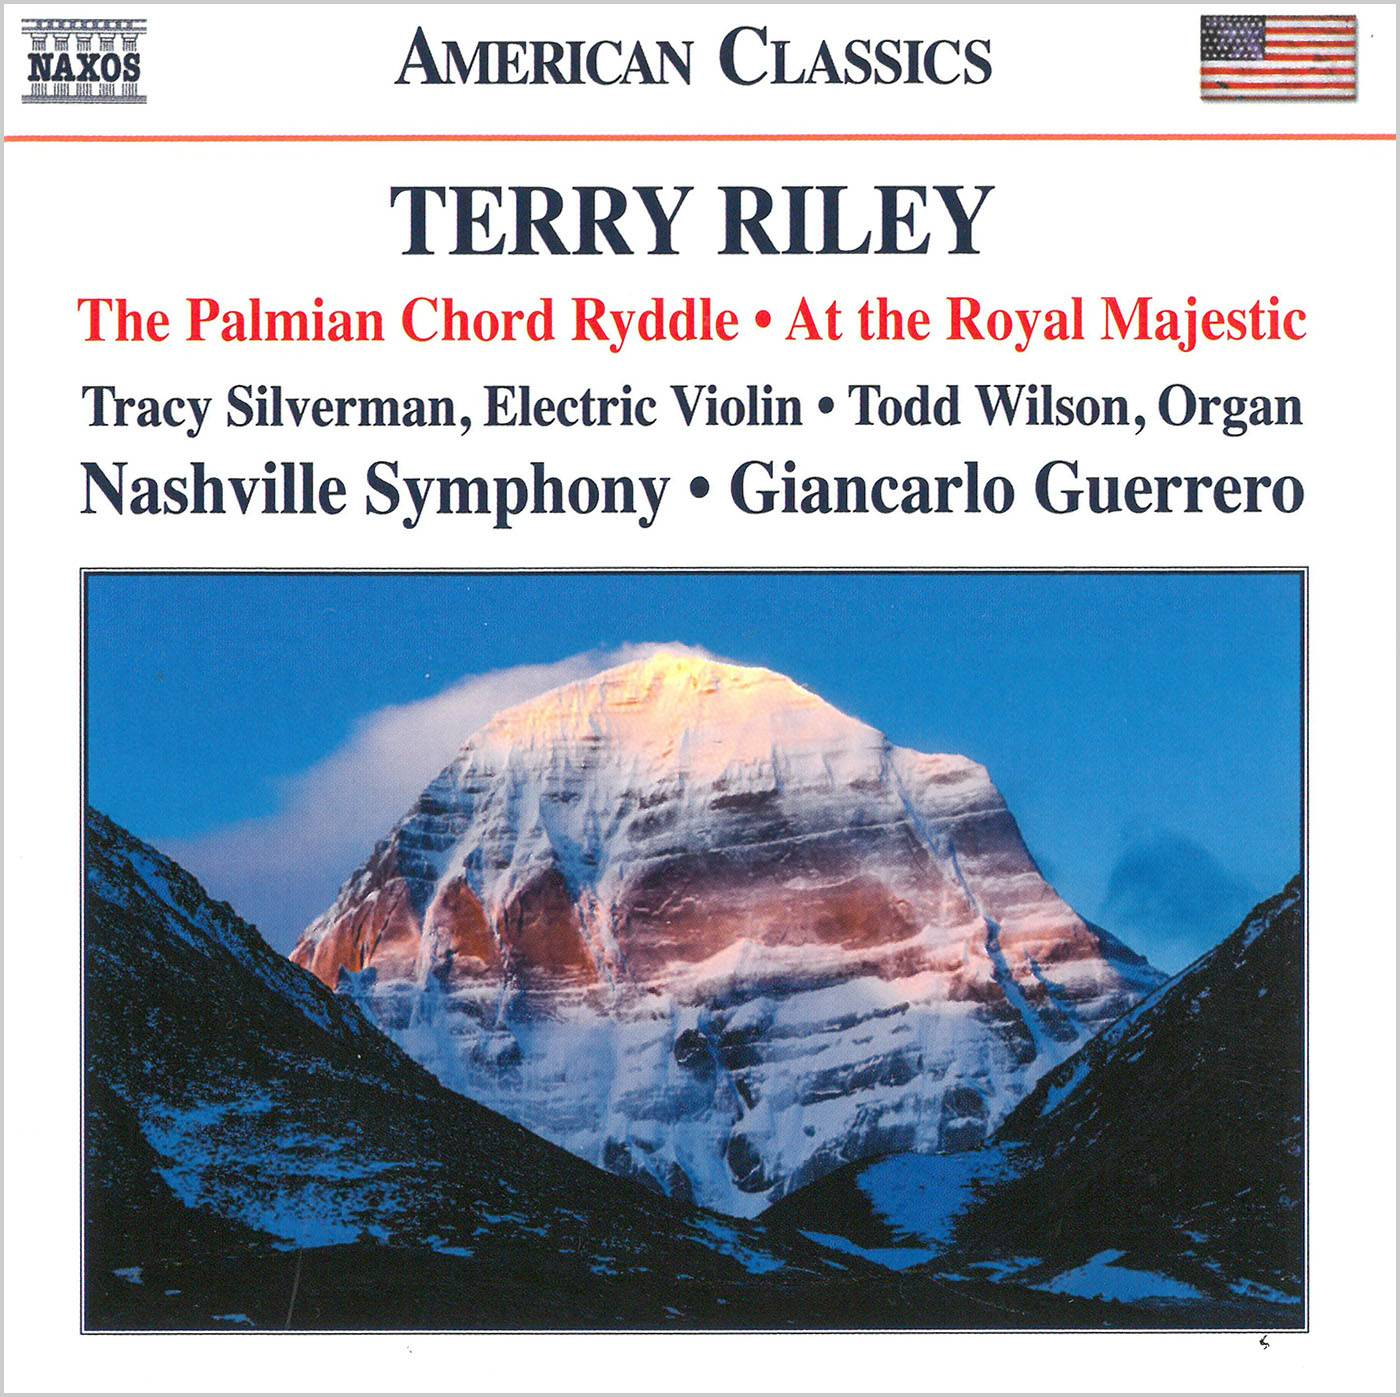 Nashville SO; Giancarlo Guerrero - Terry Riley: The Palmian Chord Ryddle; At the Royal Majestic (2017)